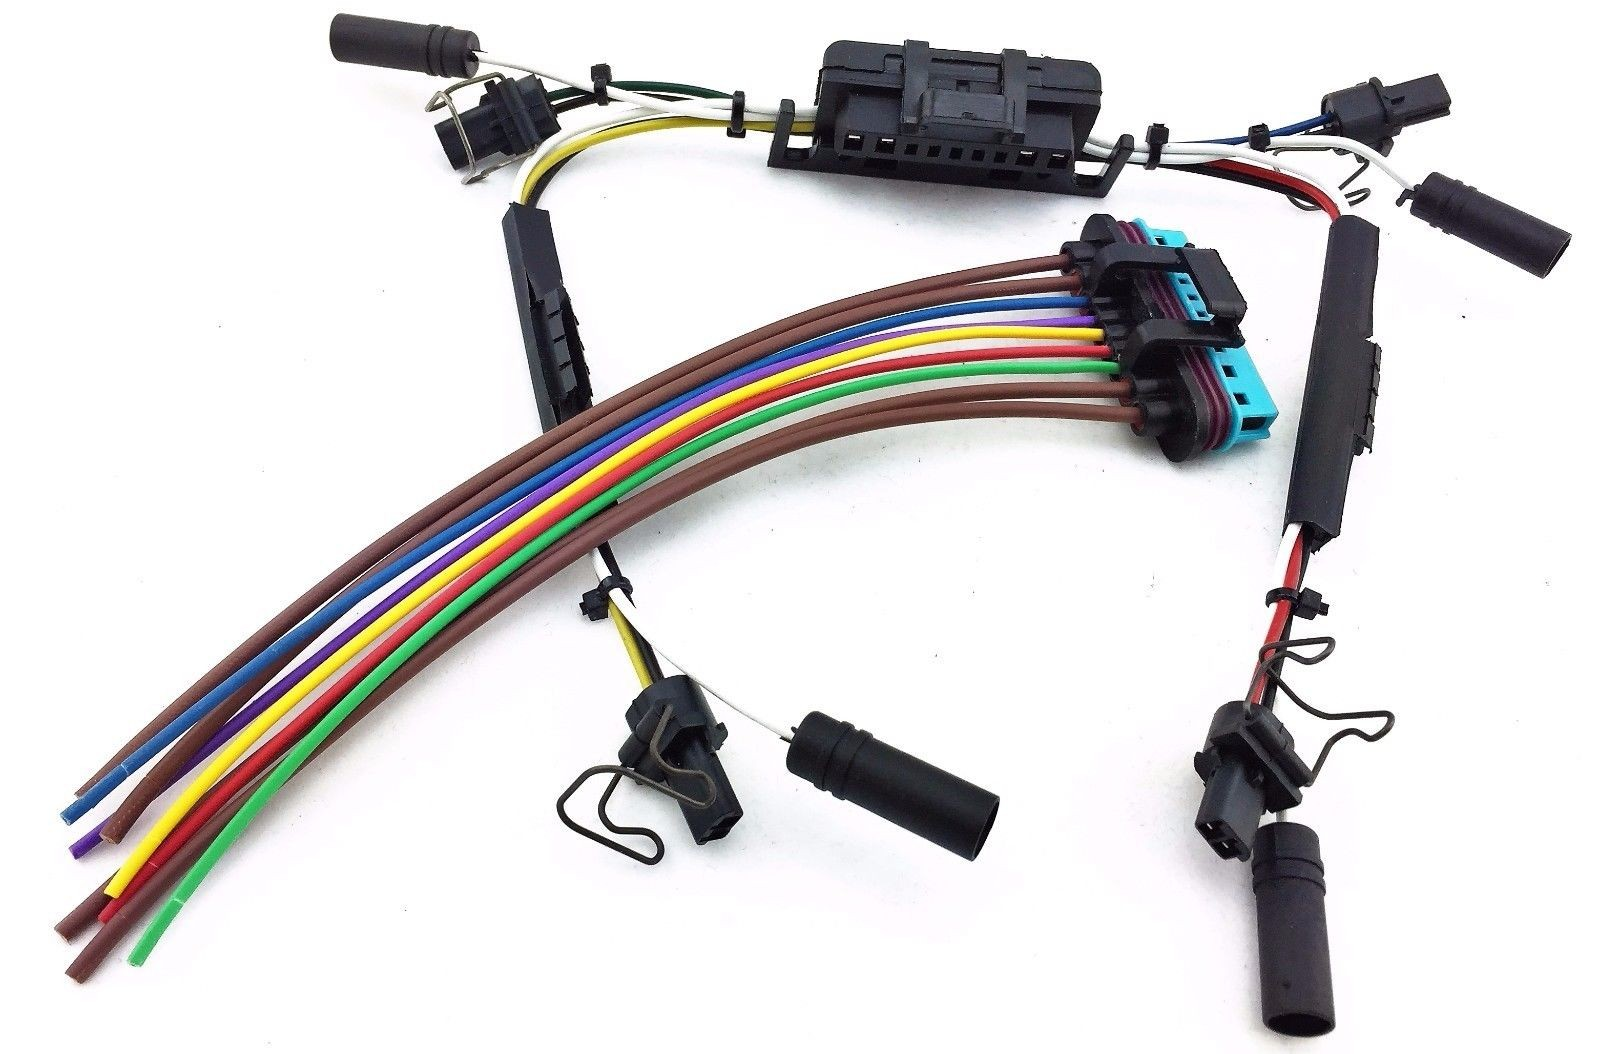 ford f 250 wiring harness repair kits 97-03 ford f-250 f-350 f250 f350 glow plugs & injector ... #5